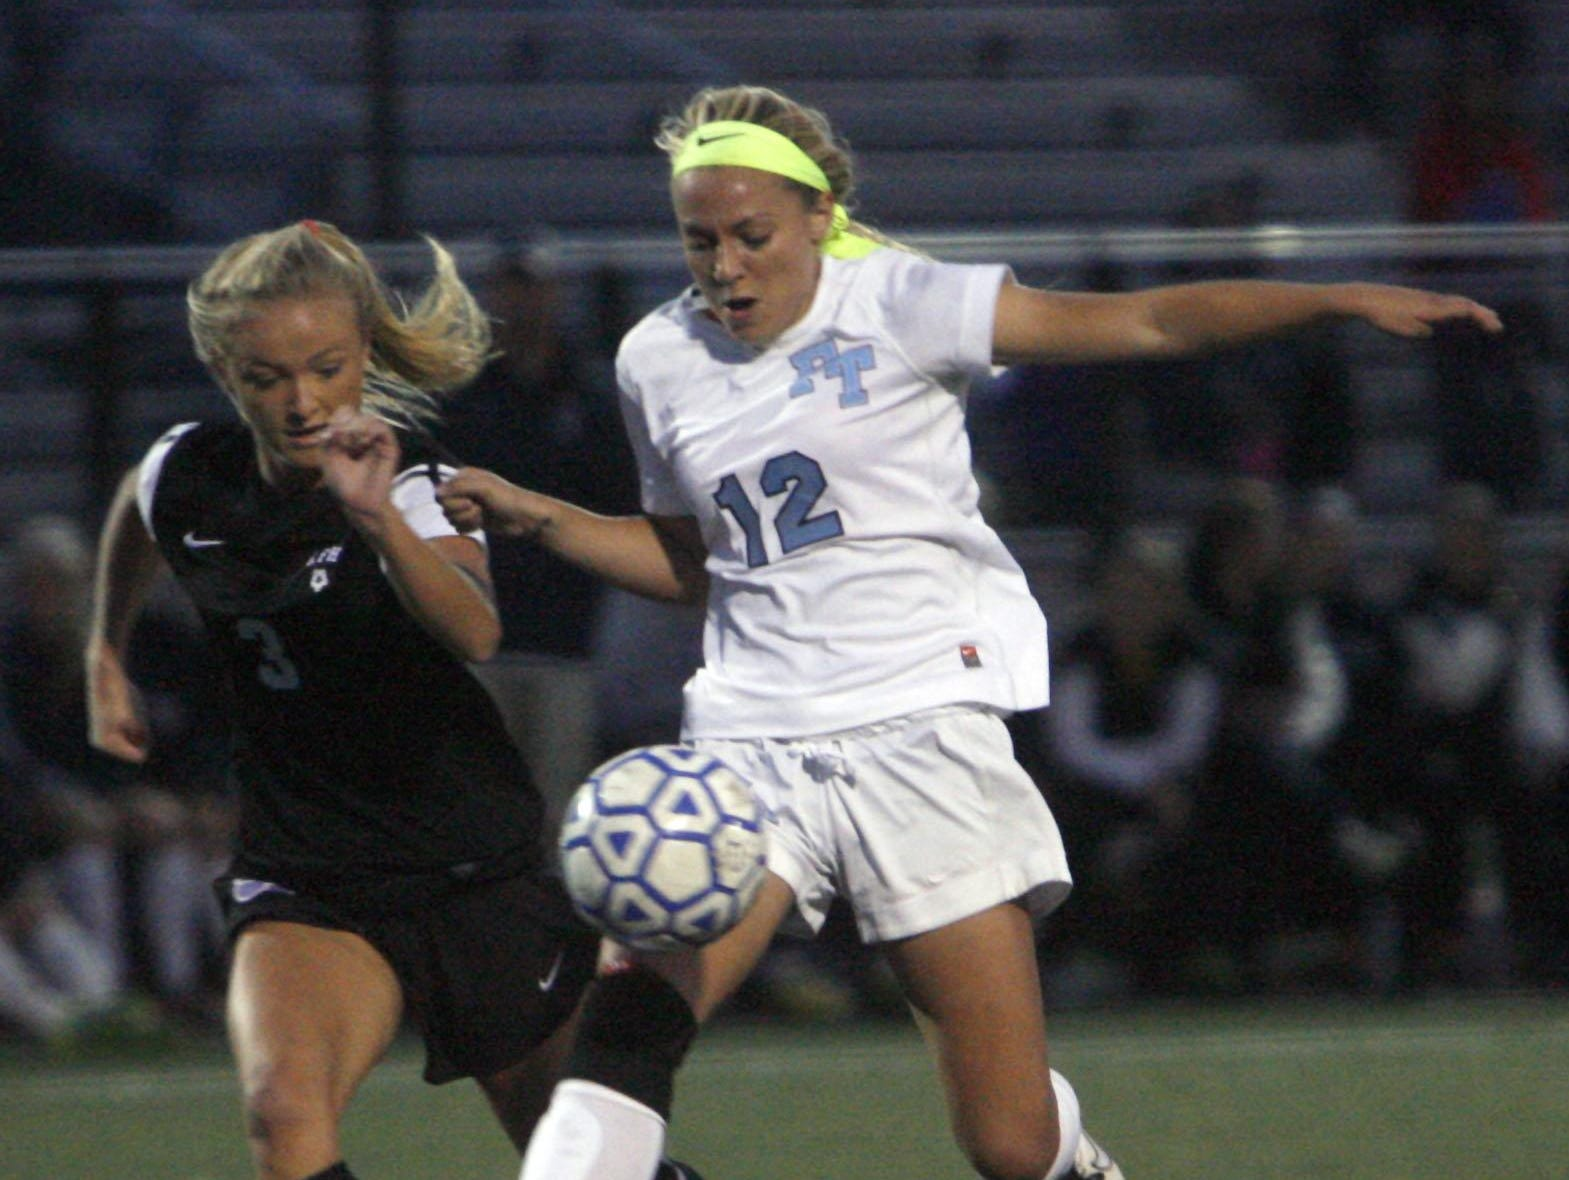 Rumson-Fair Haven's Jacqueline Littleson, left and Freehold Township's Lacey Powell (12) fight for control in the SCT Semifinal at Toms River North High School October 29, 2015.